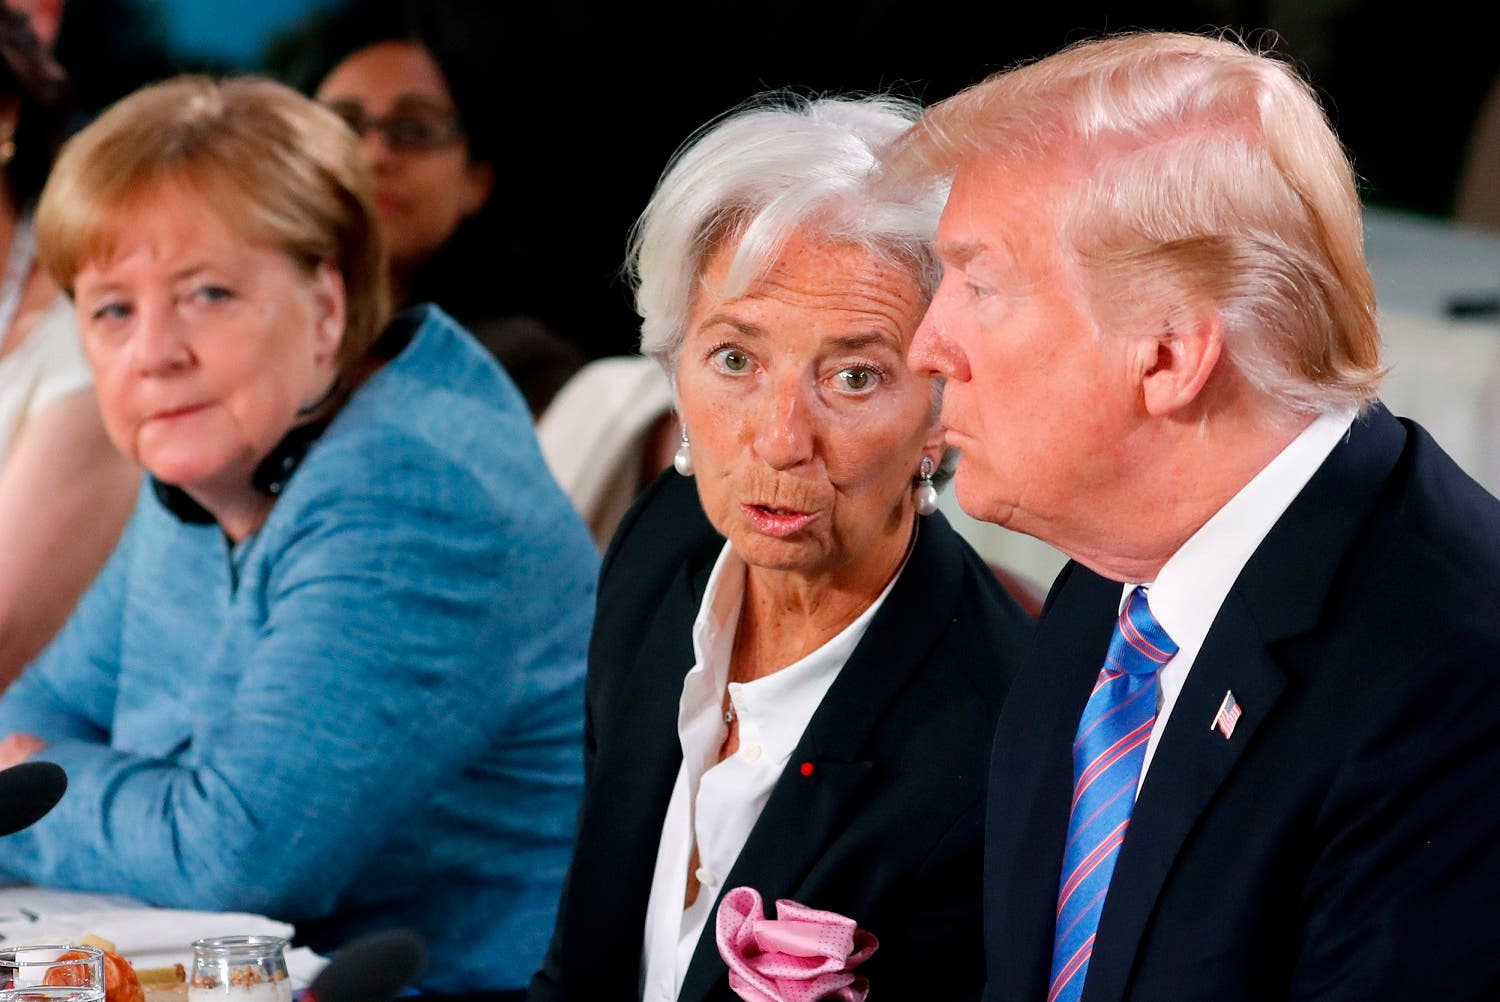 President Donald Trump and International Monetary Fund (IMF) Director Christine Lagarde at the  G7 summit at La Malbaie in Quebec, Canada, on Saturday. (Reuters)